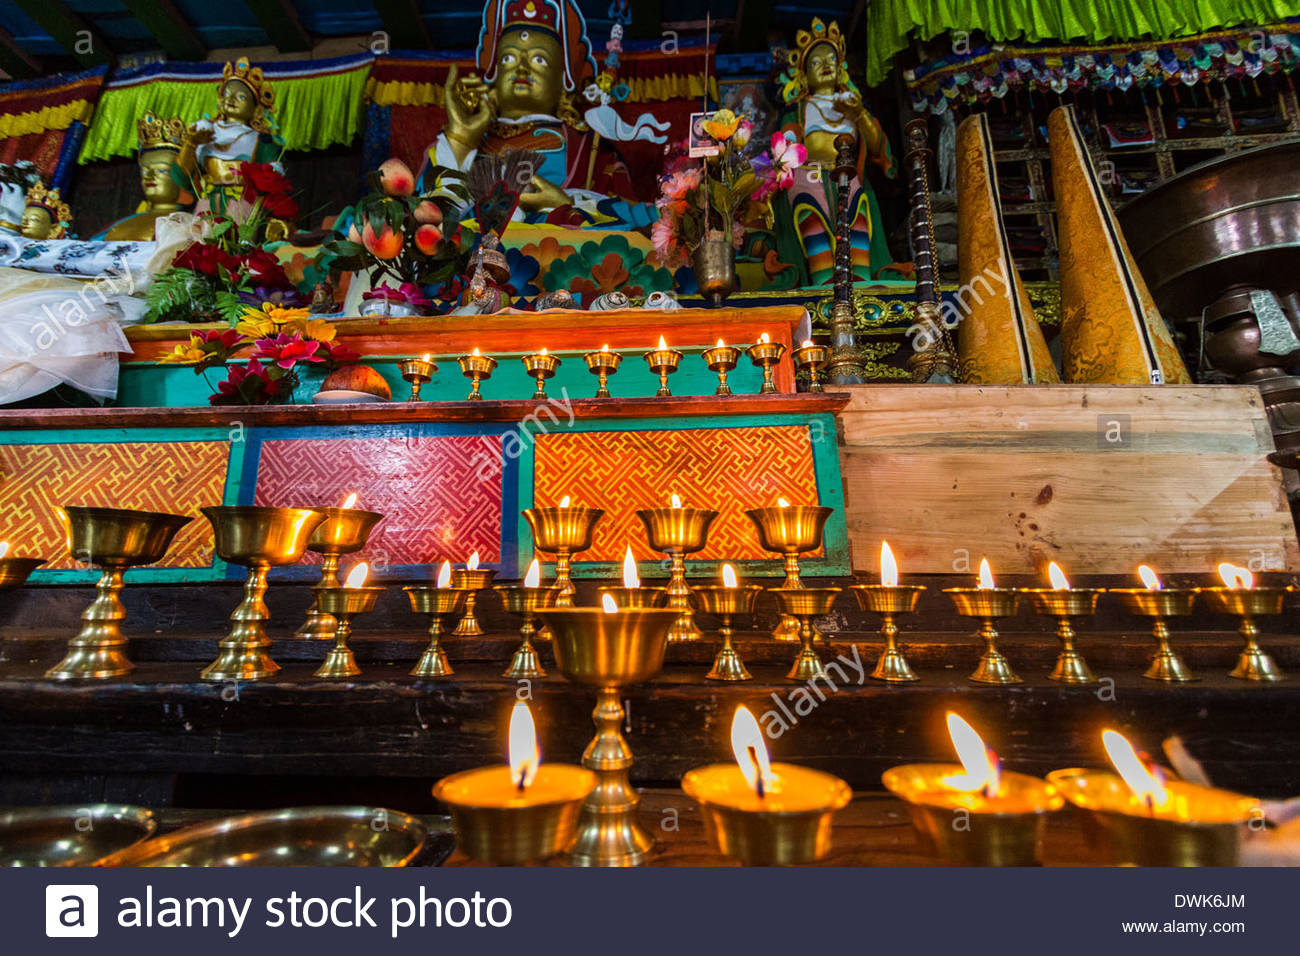 Butter candles sit in front of a statue of Guru Rinpoche in teh Khumjung Monastery in Khumjung, Nepal - Stock Image